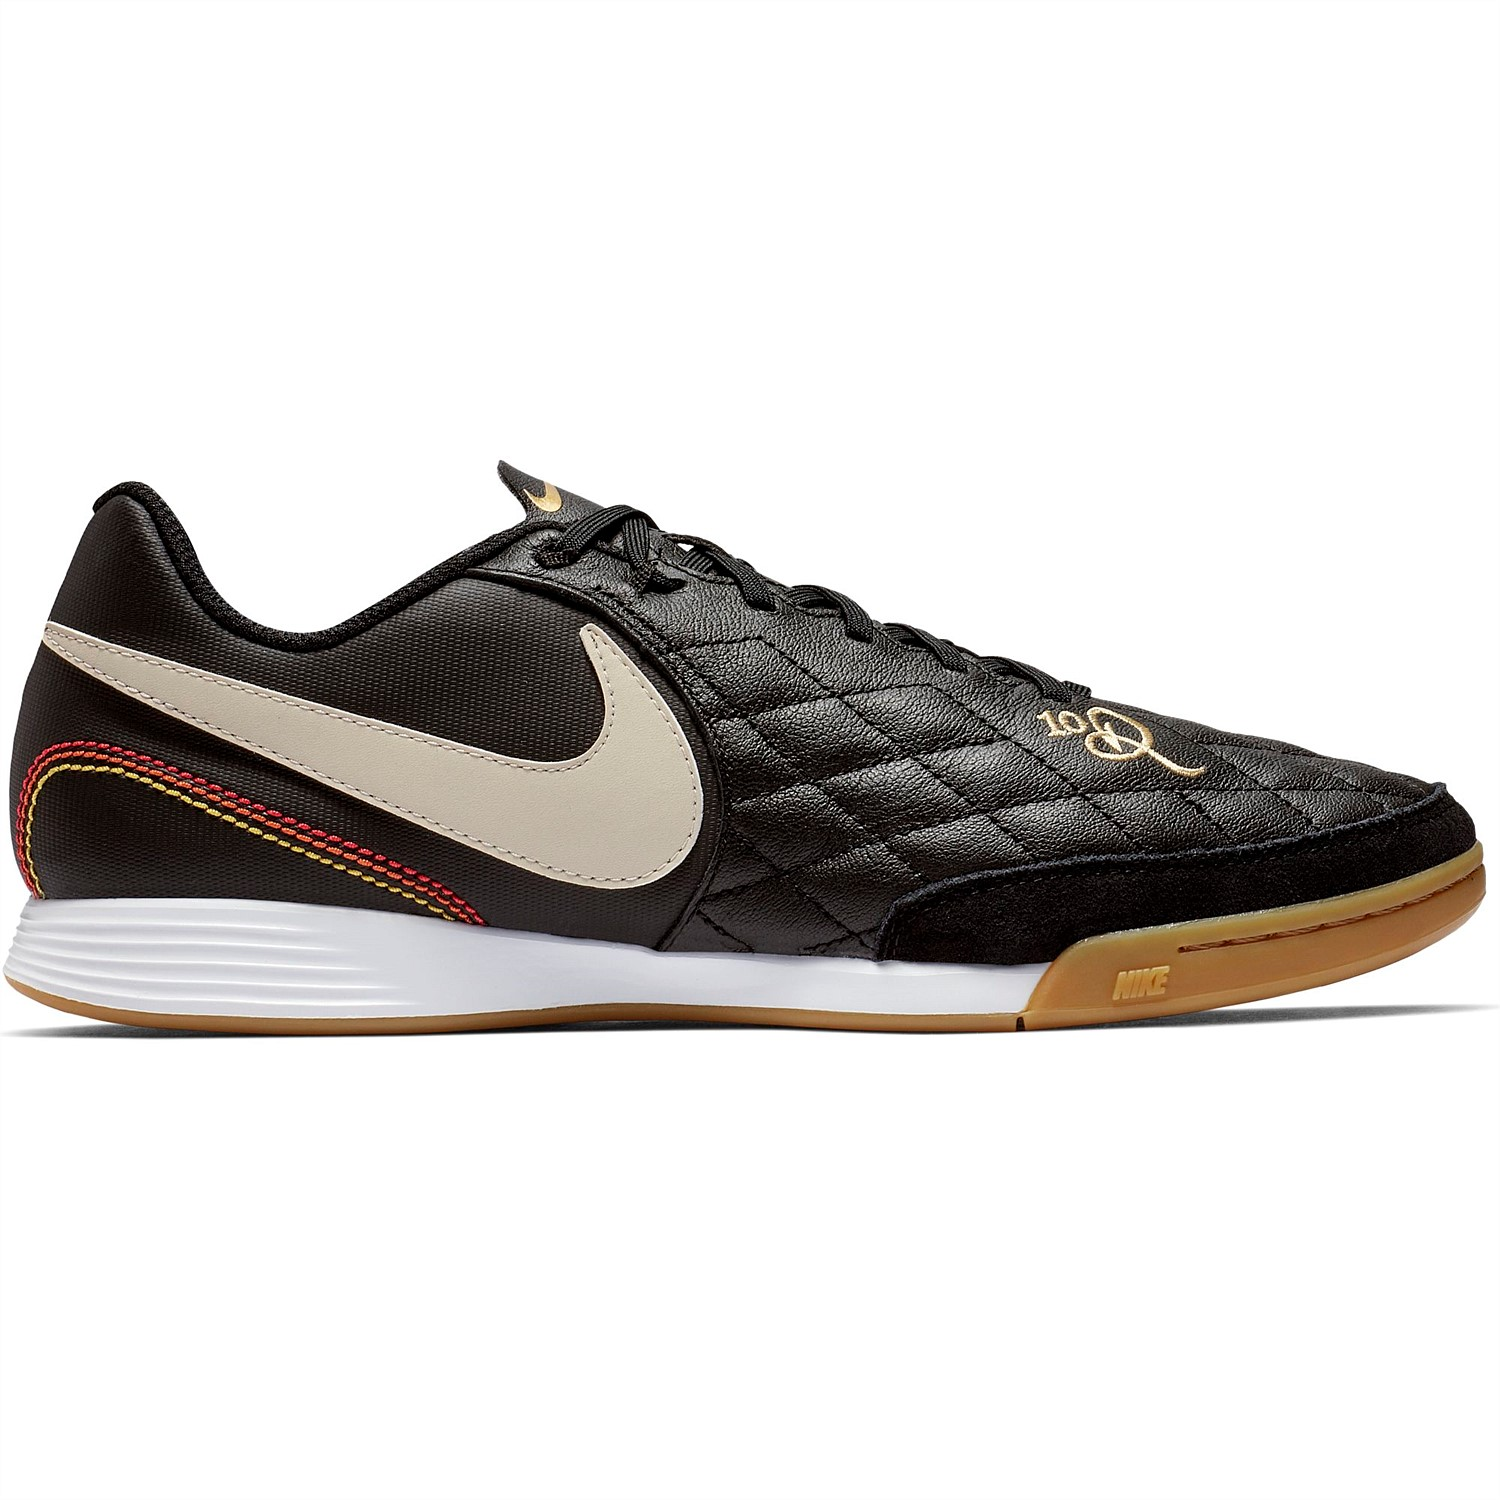 8d6937fcd004 Men's Footwear | Men's Lifestyle and Training Shoes Online | Stirling  Sports - LegendX 7 Academy 10R Indoor Court Mens